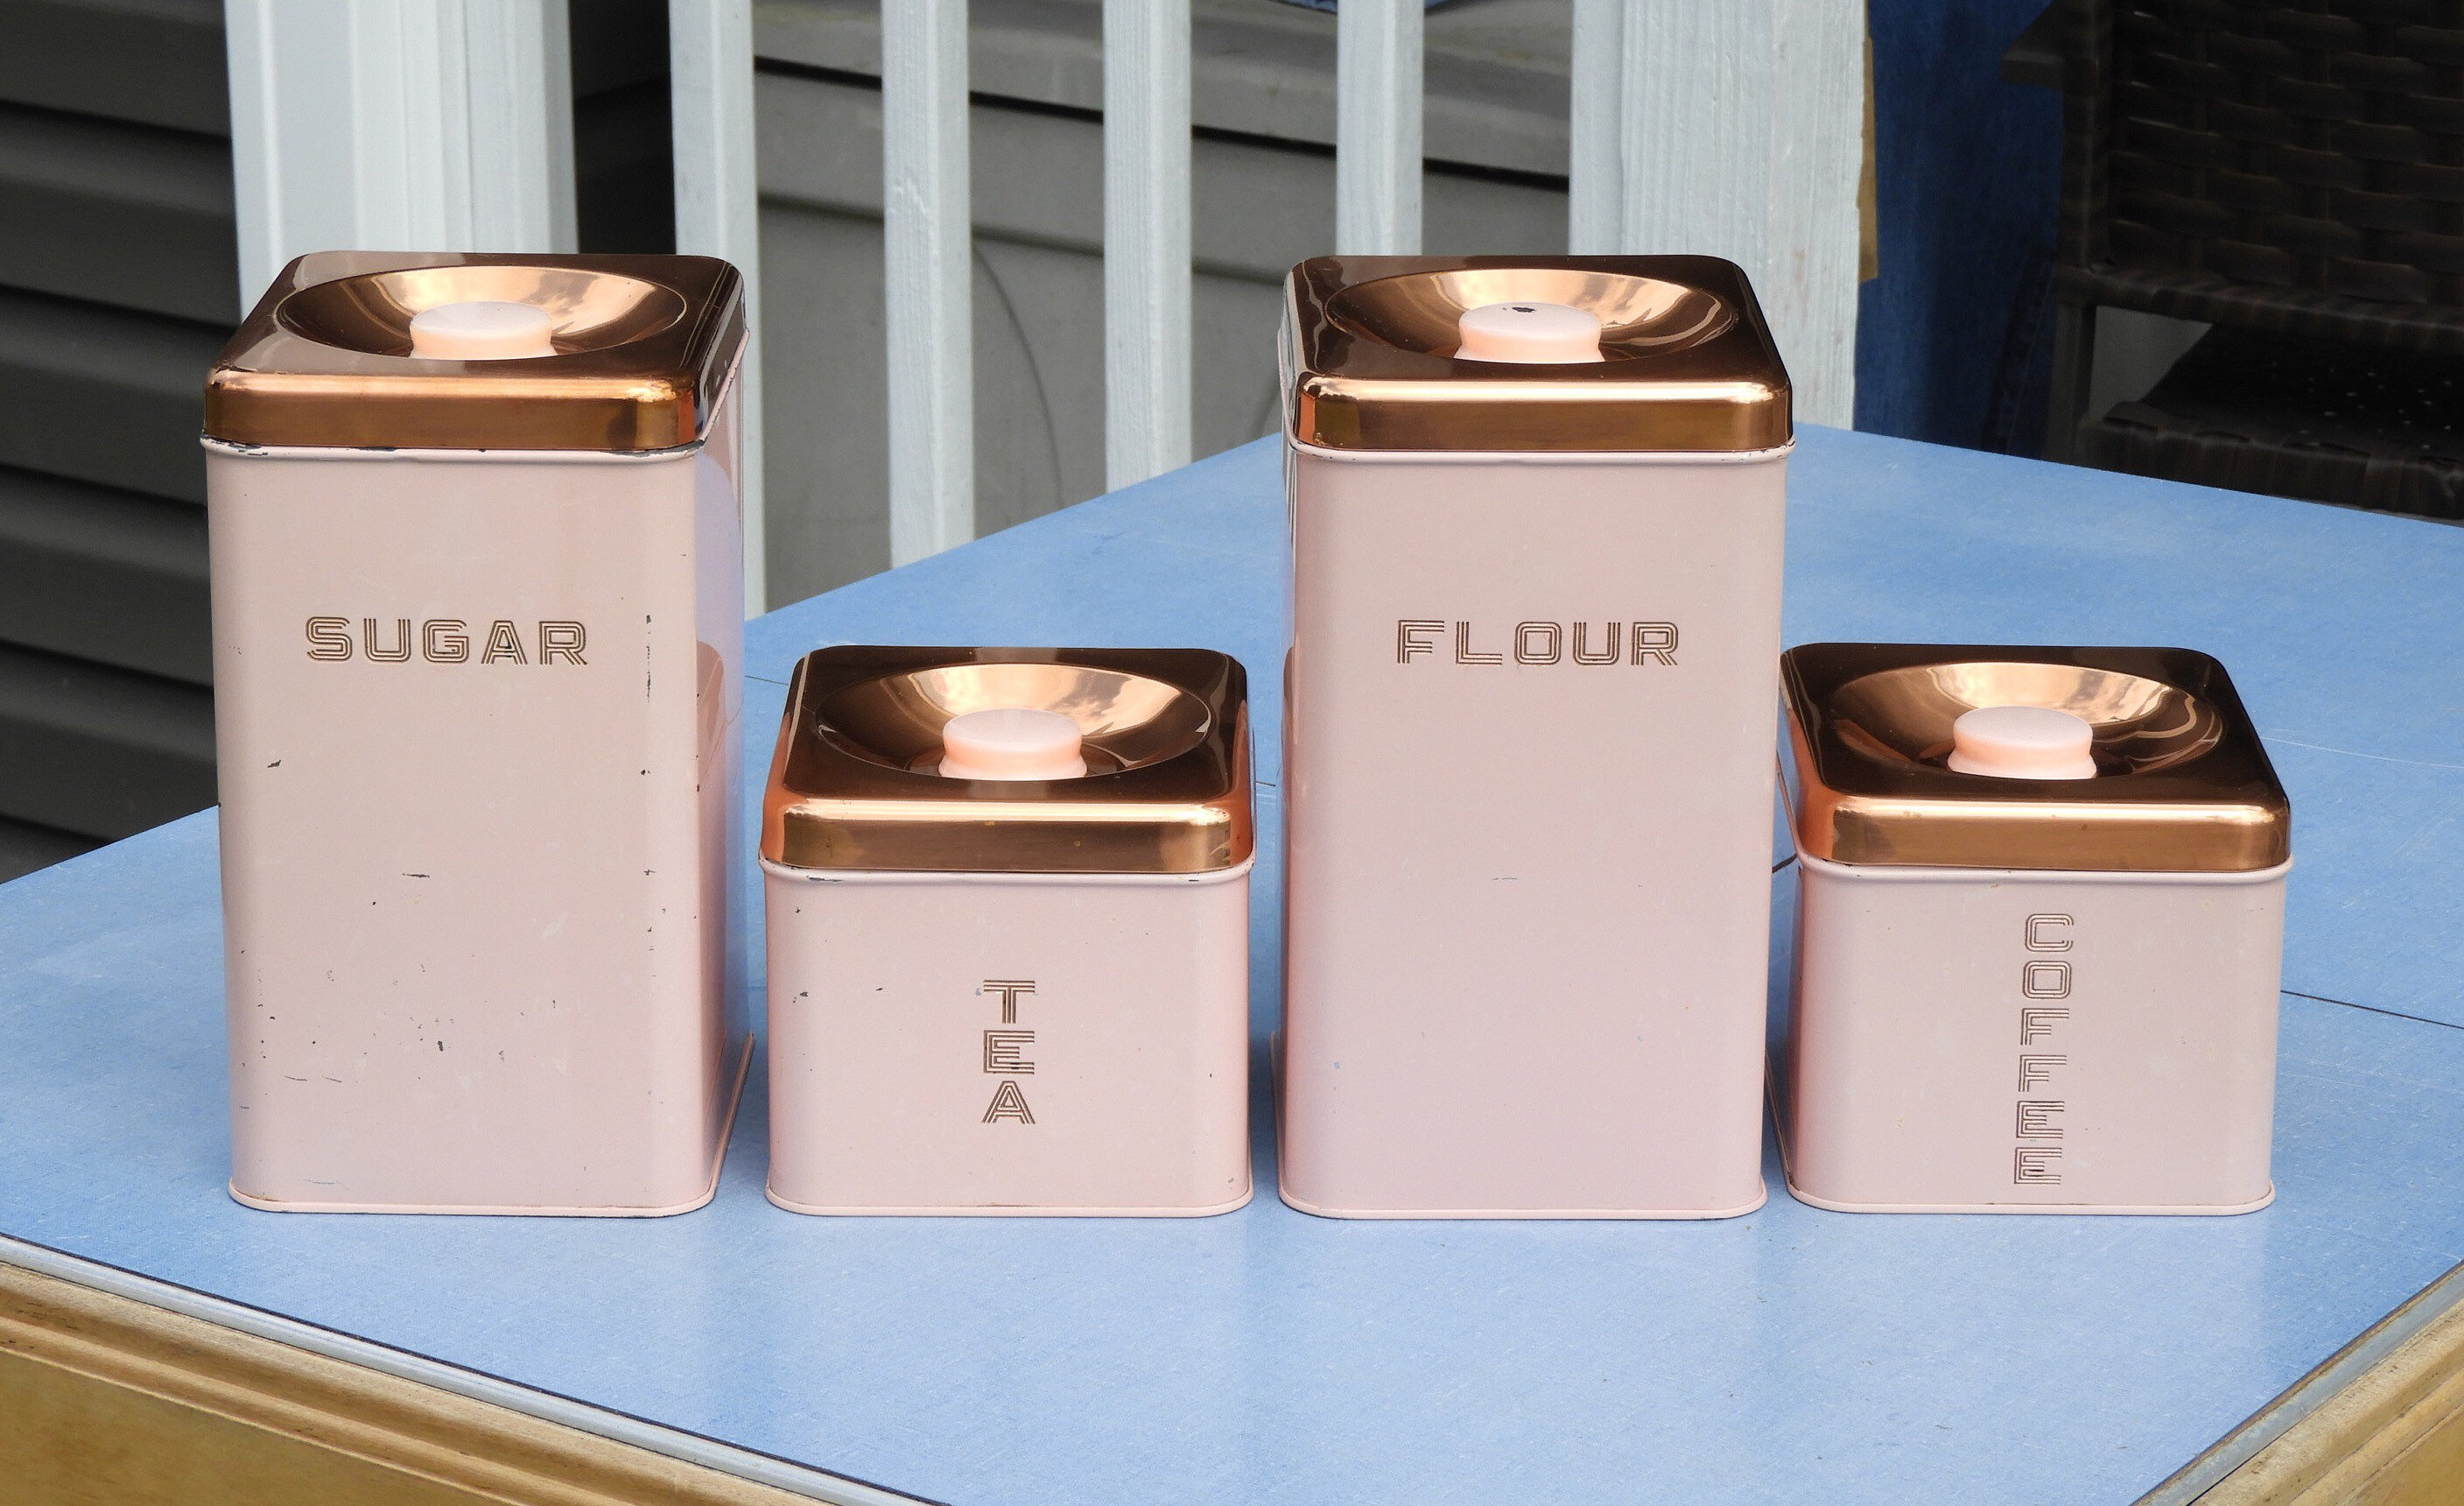 Vintage Kitchen Canisters (4), Pink U0026 Copper Lincoln Beautyware, Square  Kitchen Decor, Decorative Storage Bins, Retro Pink Containers